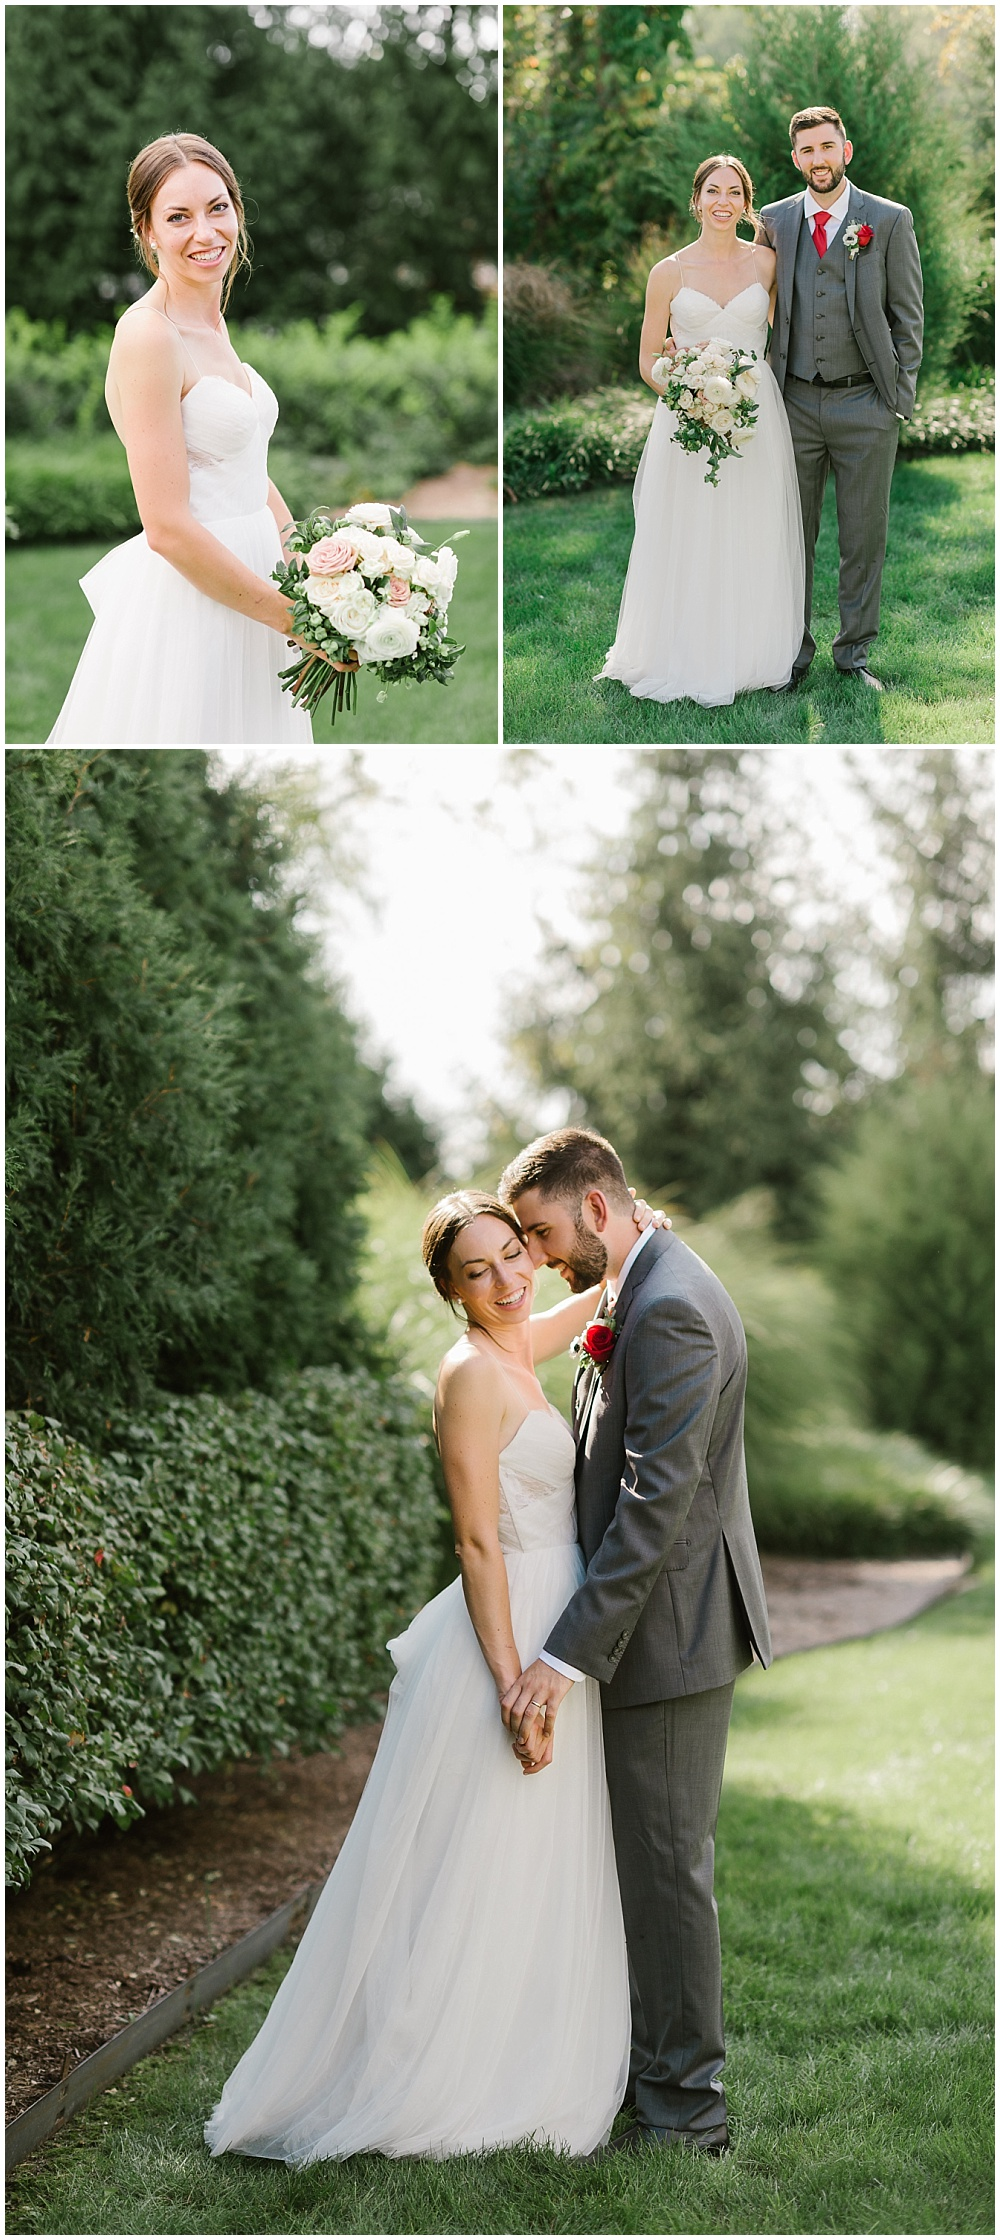 Bride and groom portraits Fall garden-inspired wedding at the Ritz Charles Garden Pavilion in Carmel, Indiana | Jessica Dum Wedding Coordination